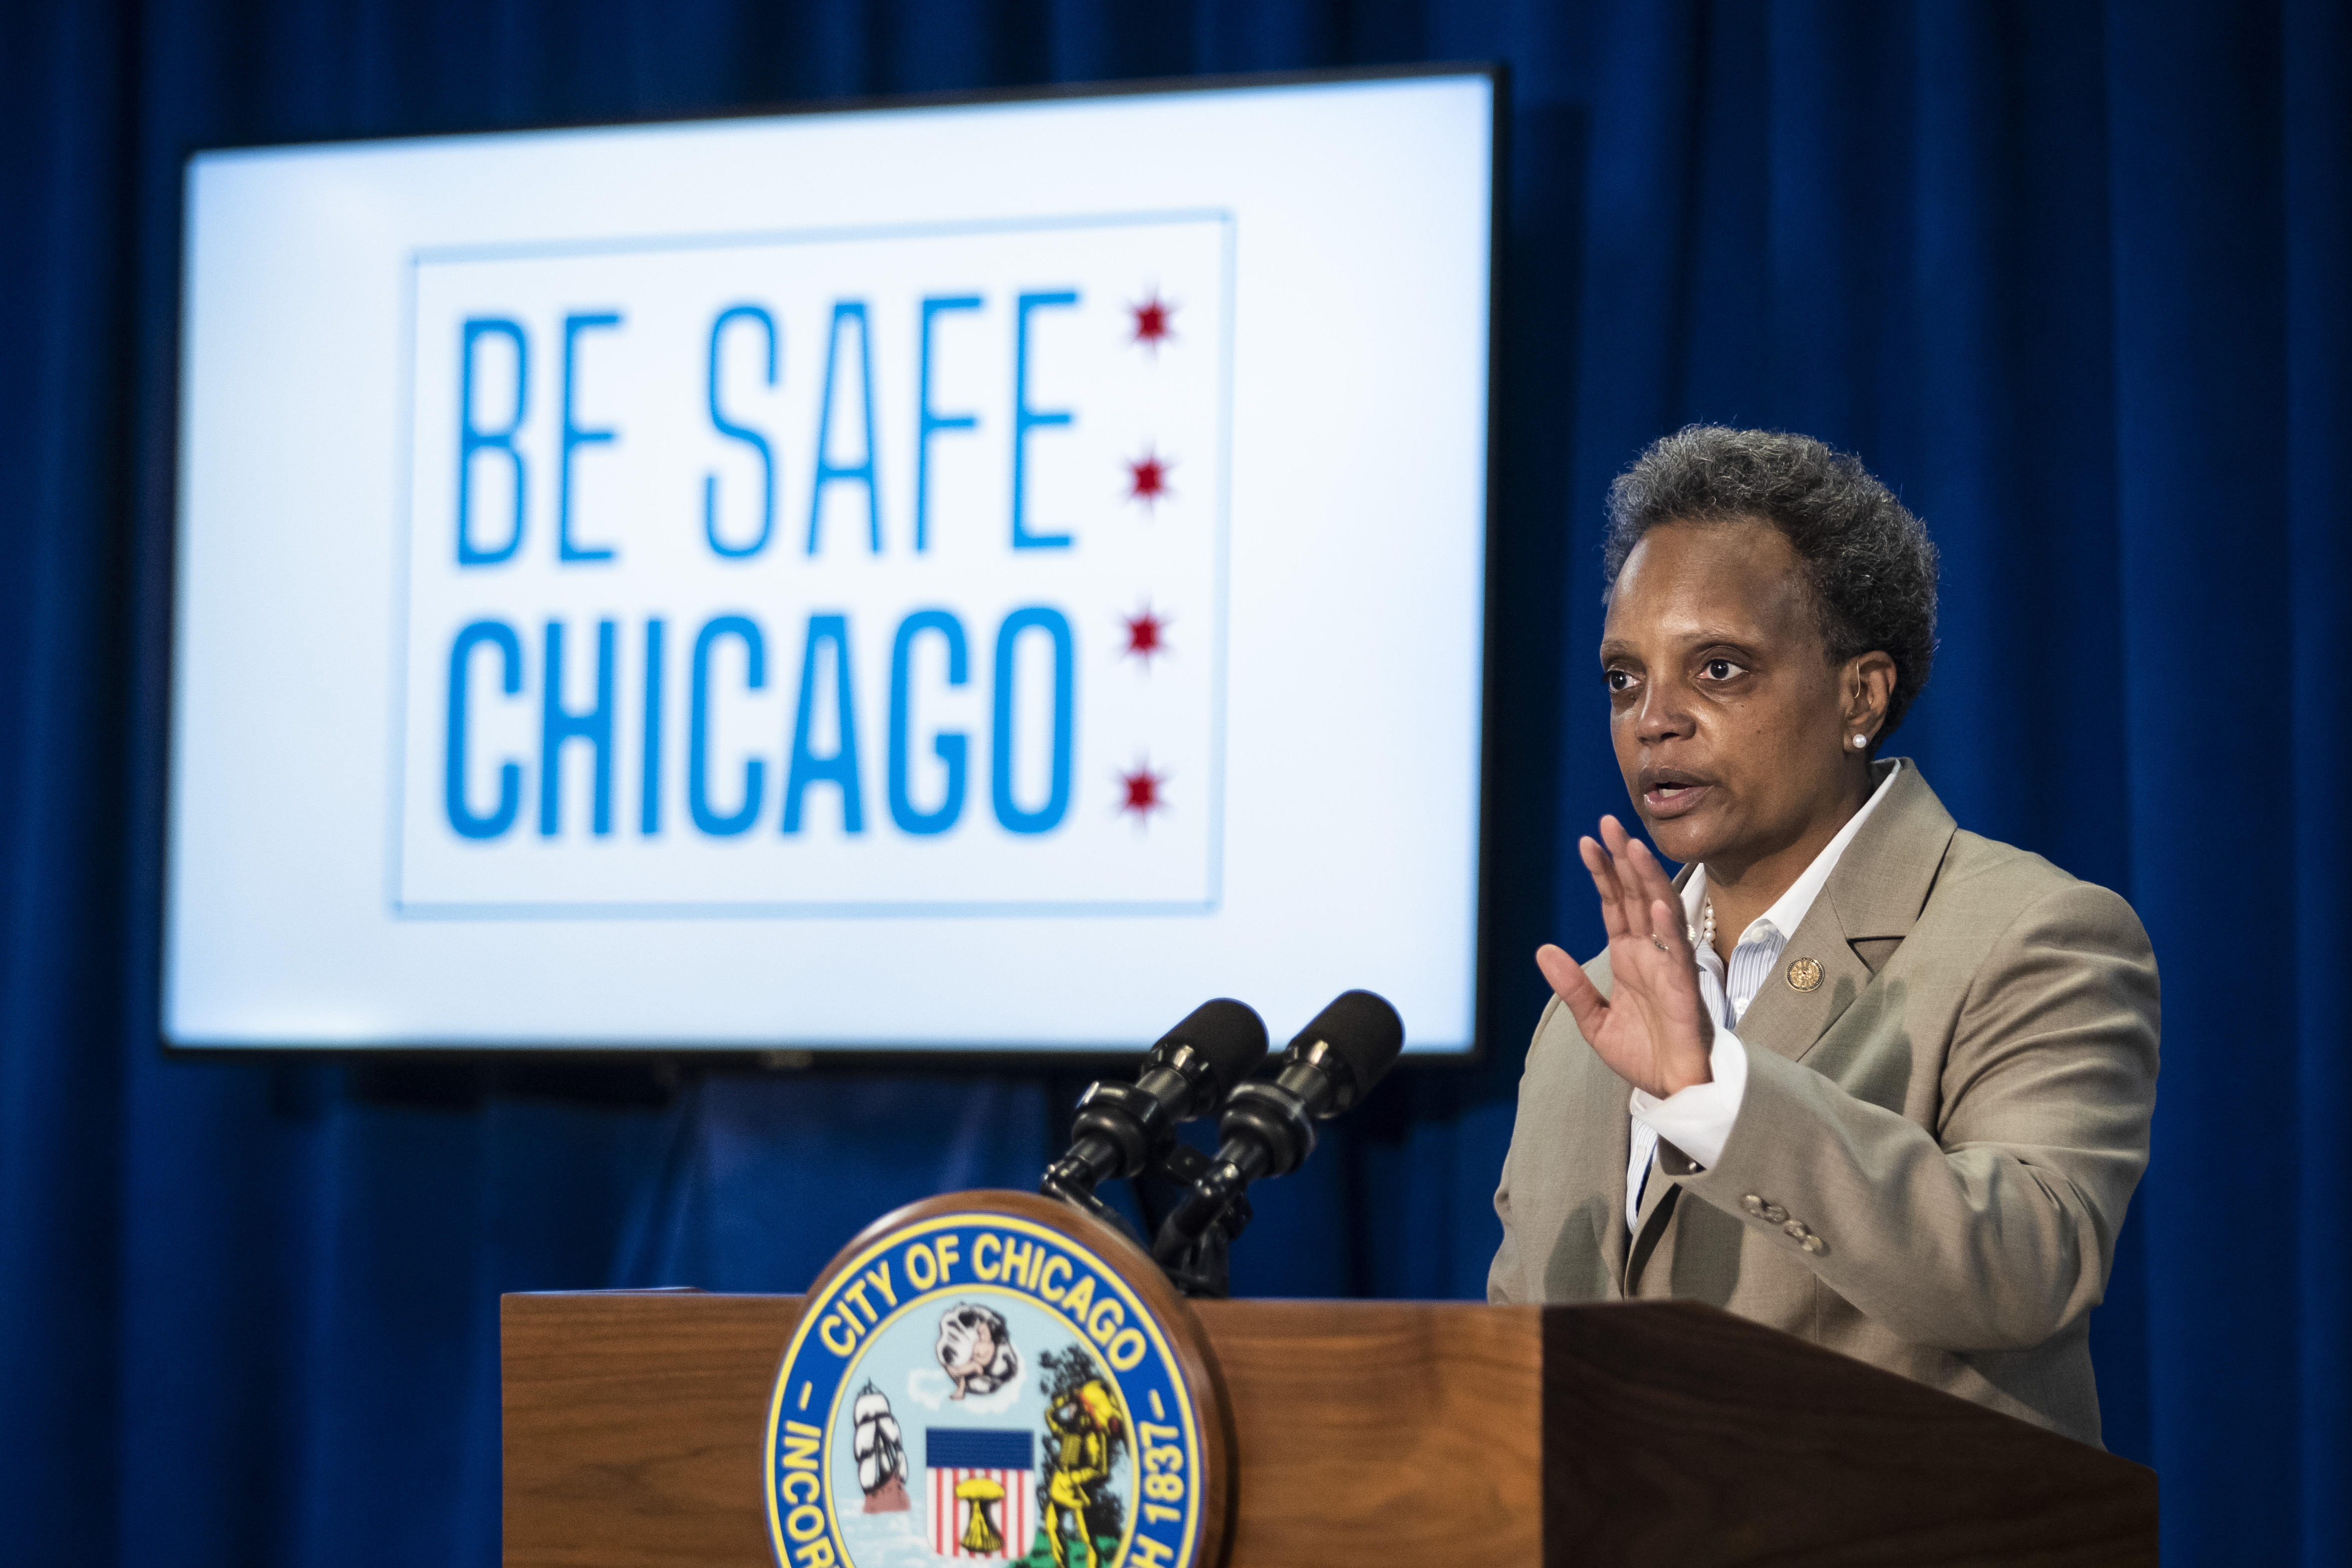 Mayor Lori Lightfoot held a news conference at City Hall on Monday, June 22 to discuss details of the city's plans to continue a cautious reopening amid the coronavirus pandemic.